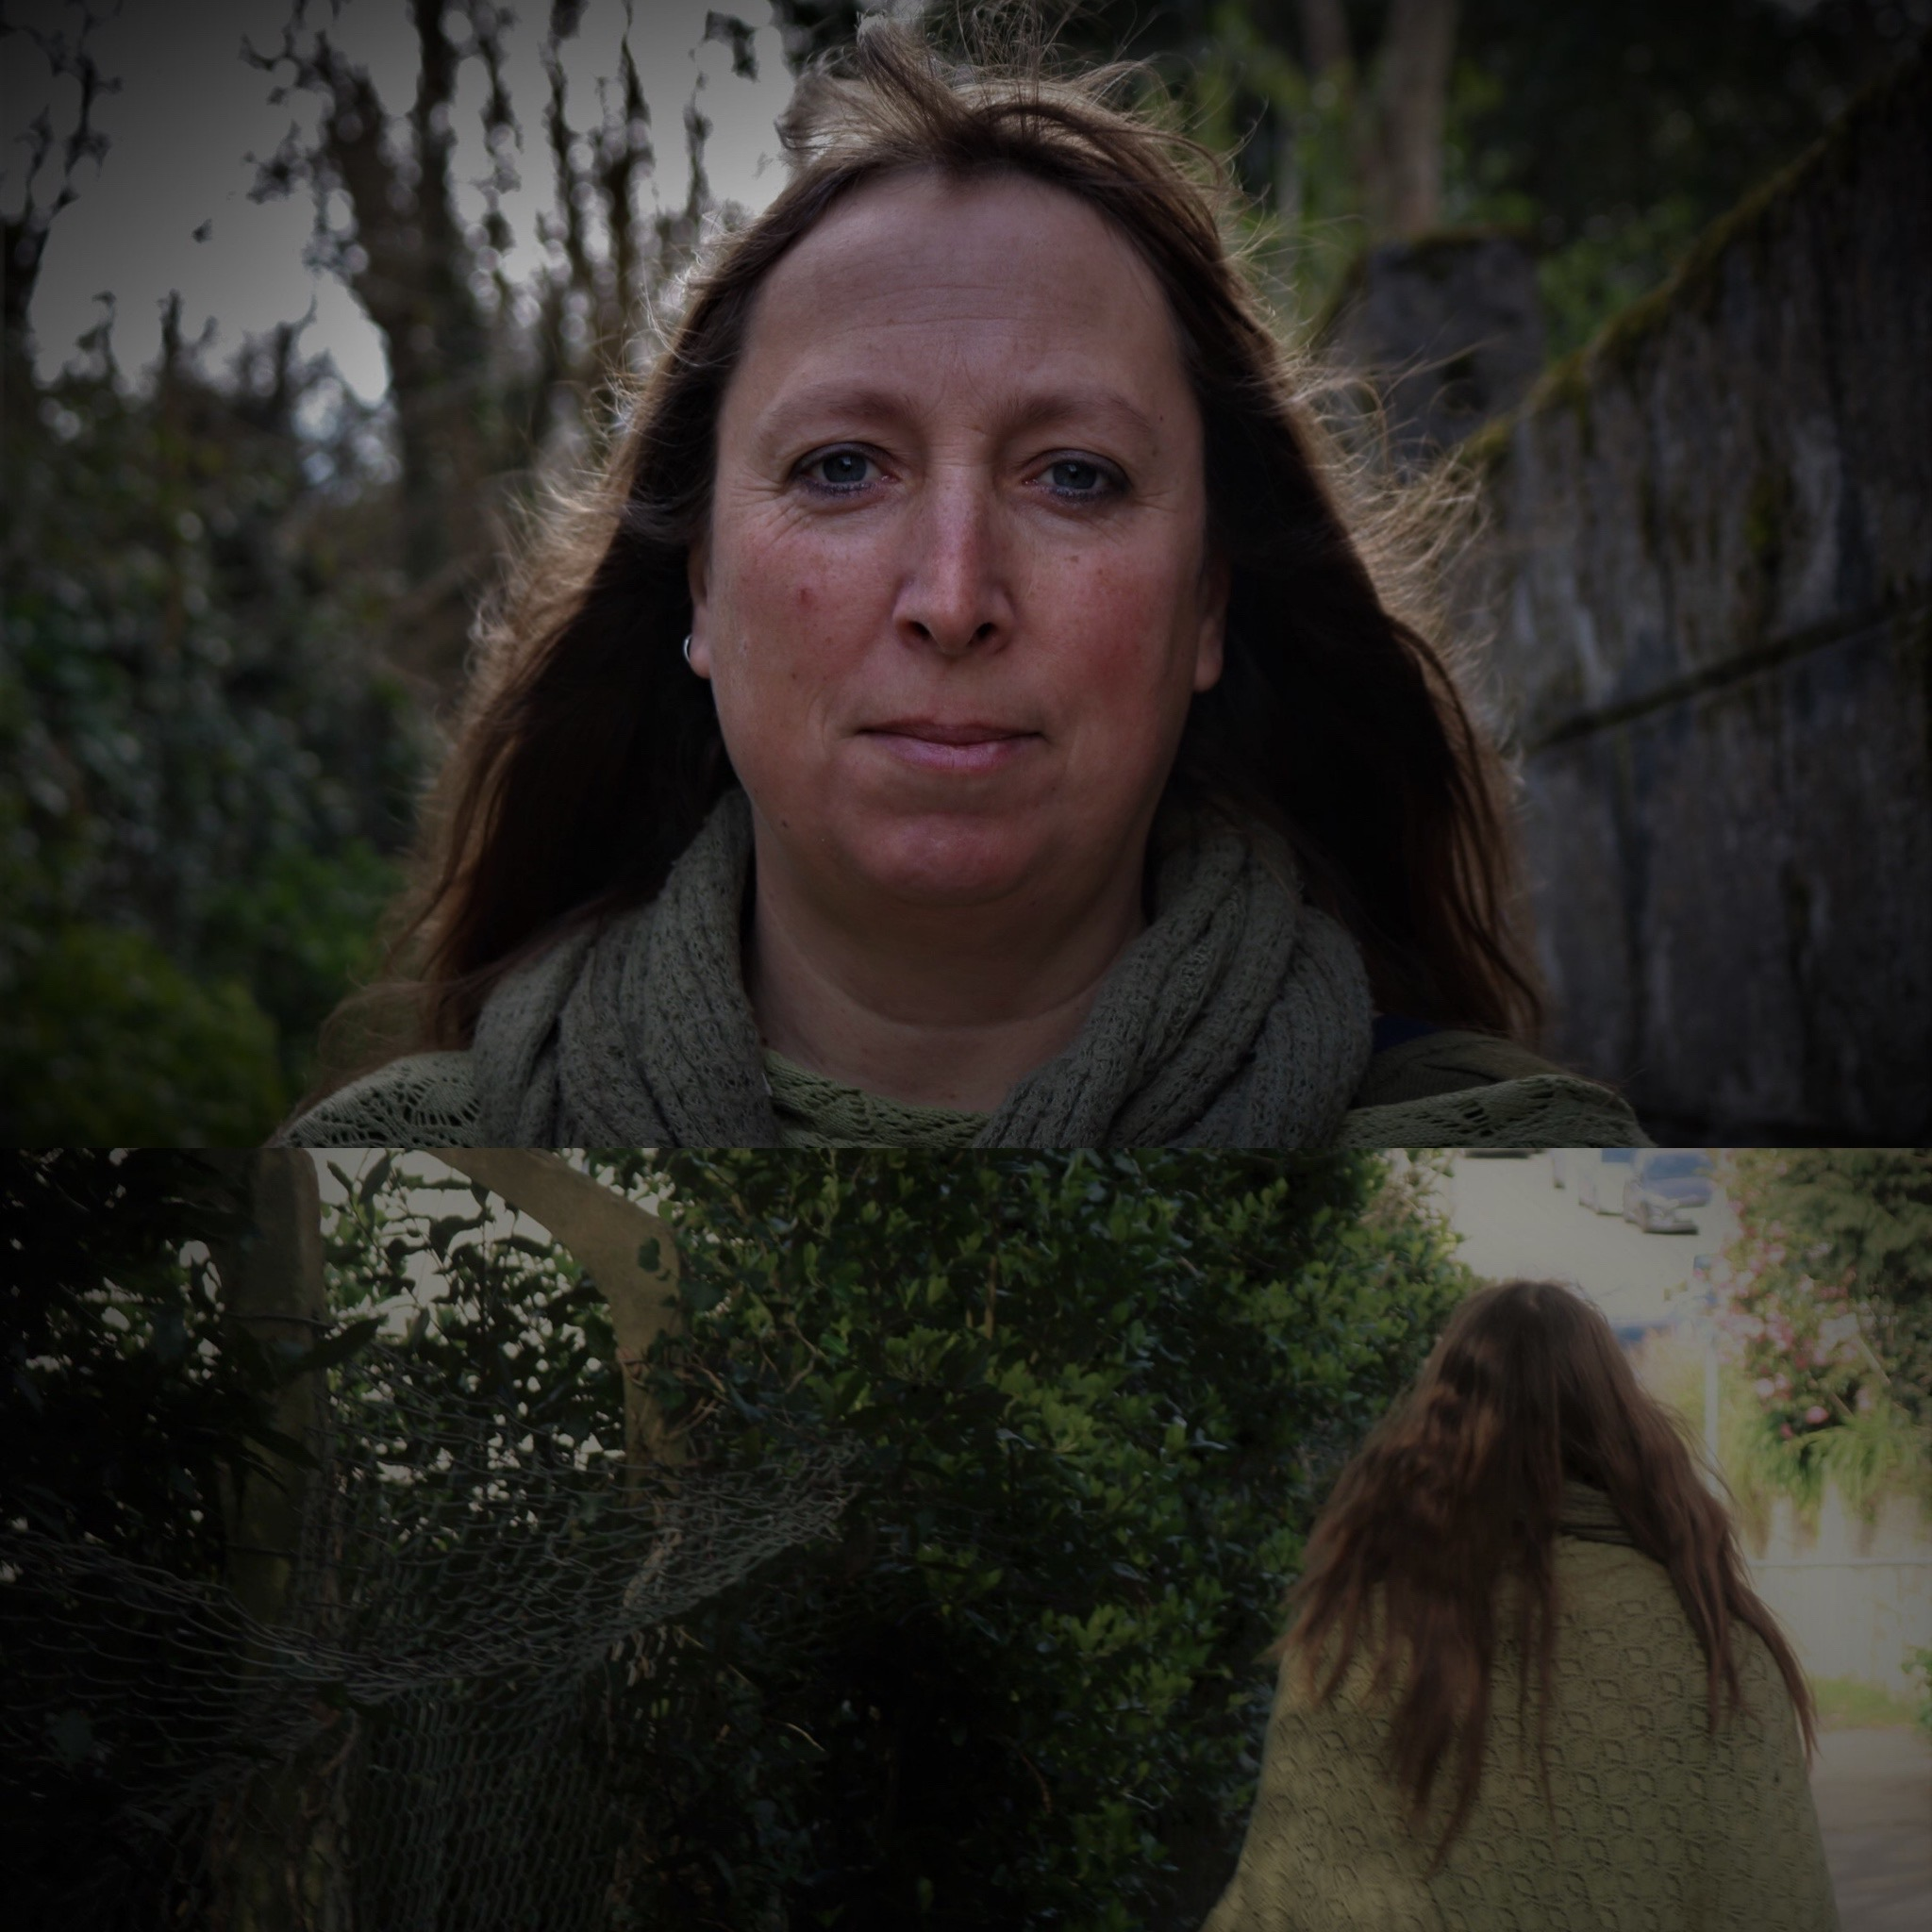 Women feel unsafe and vulnerable walking alone in Cornwall